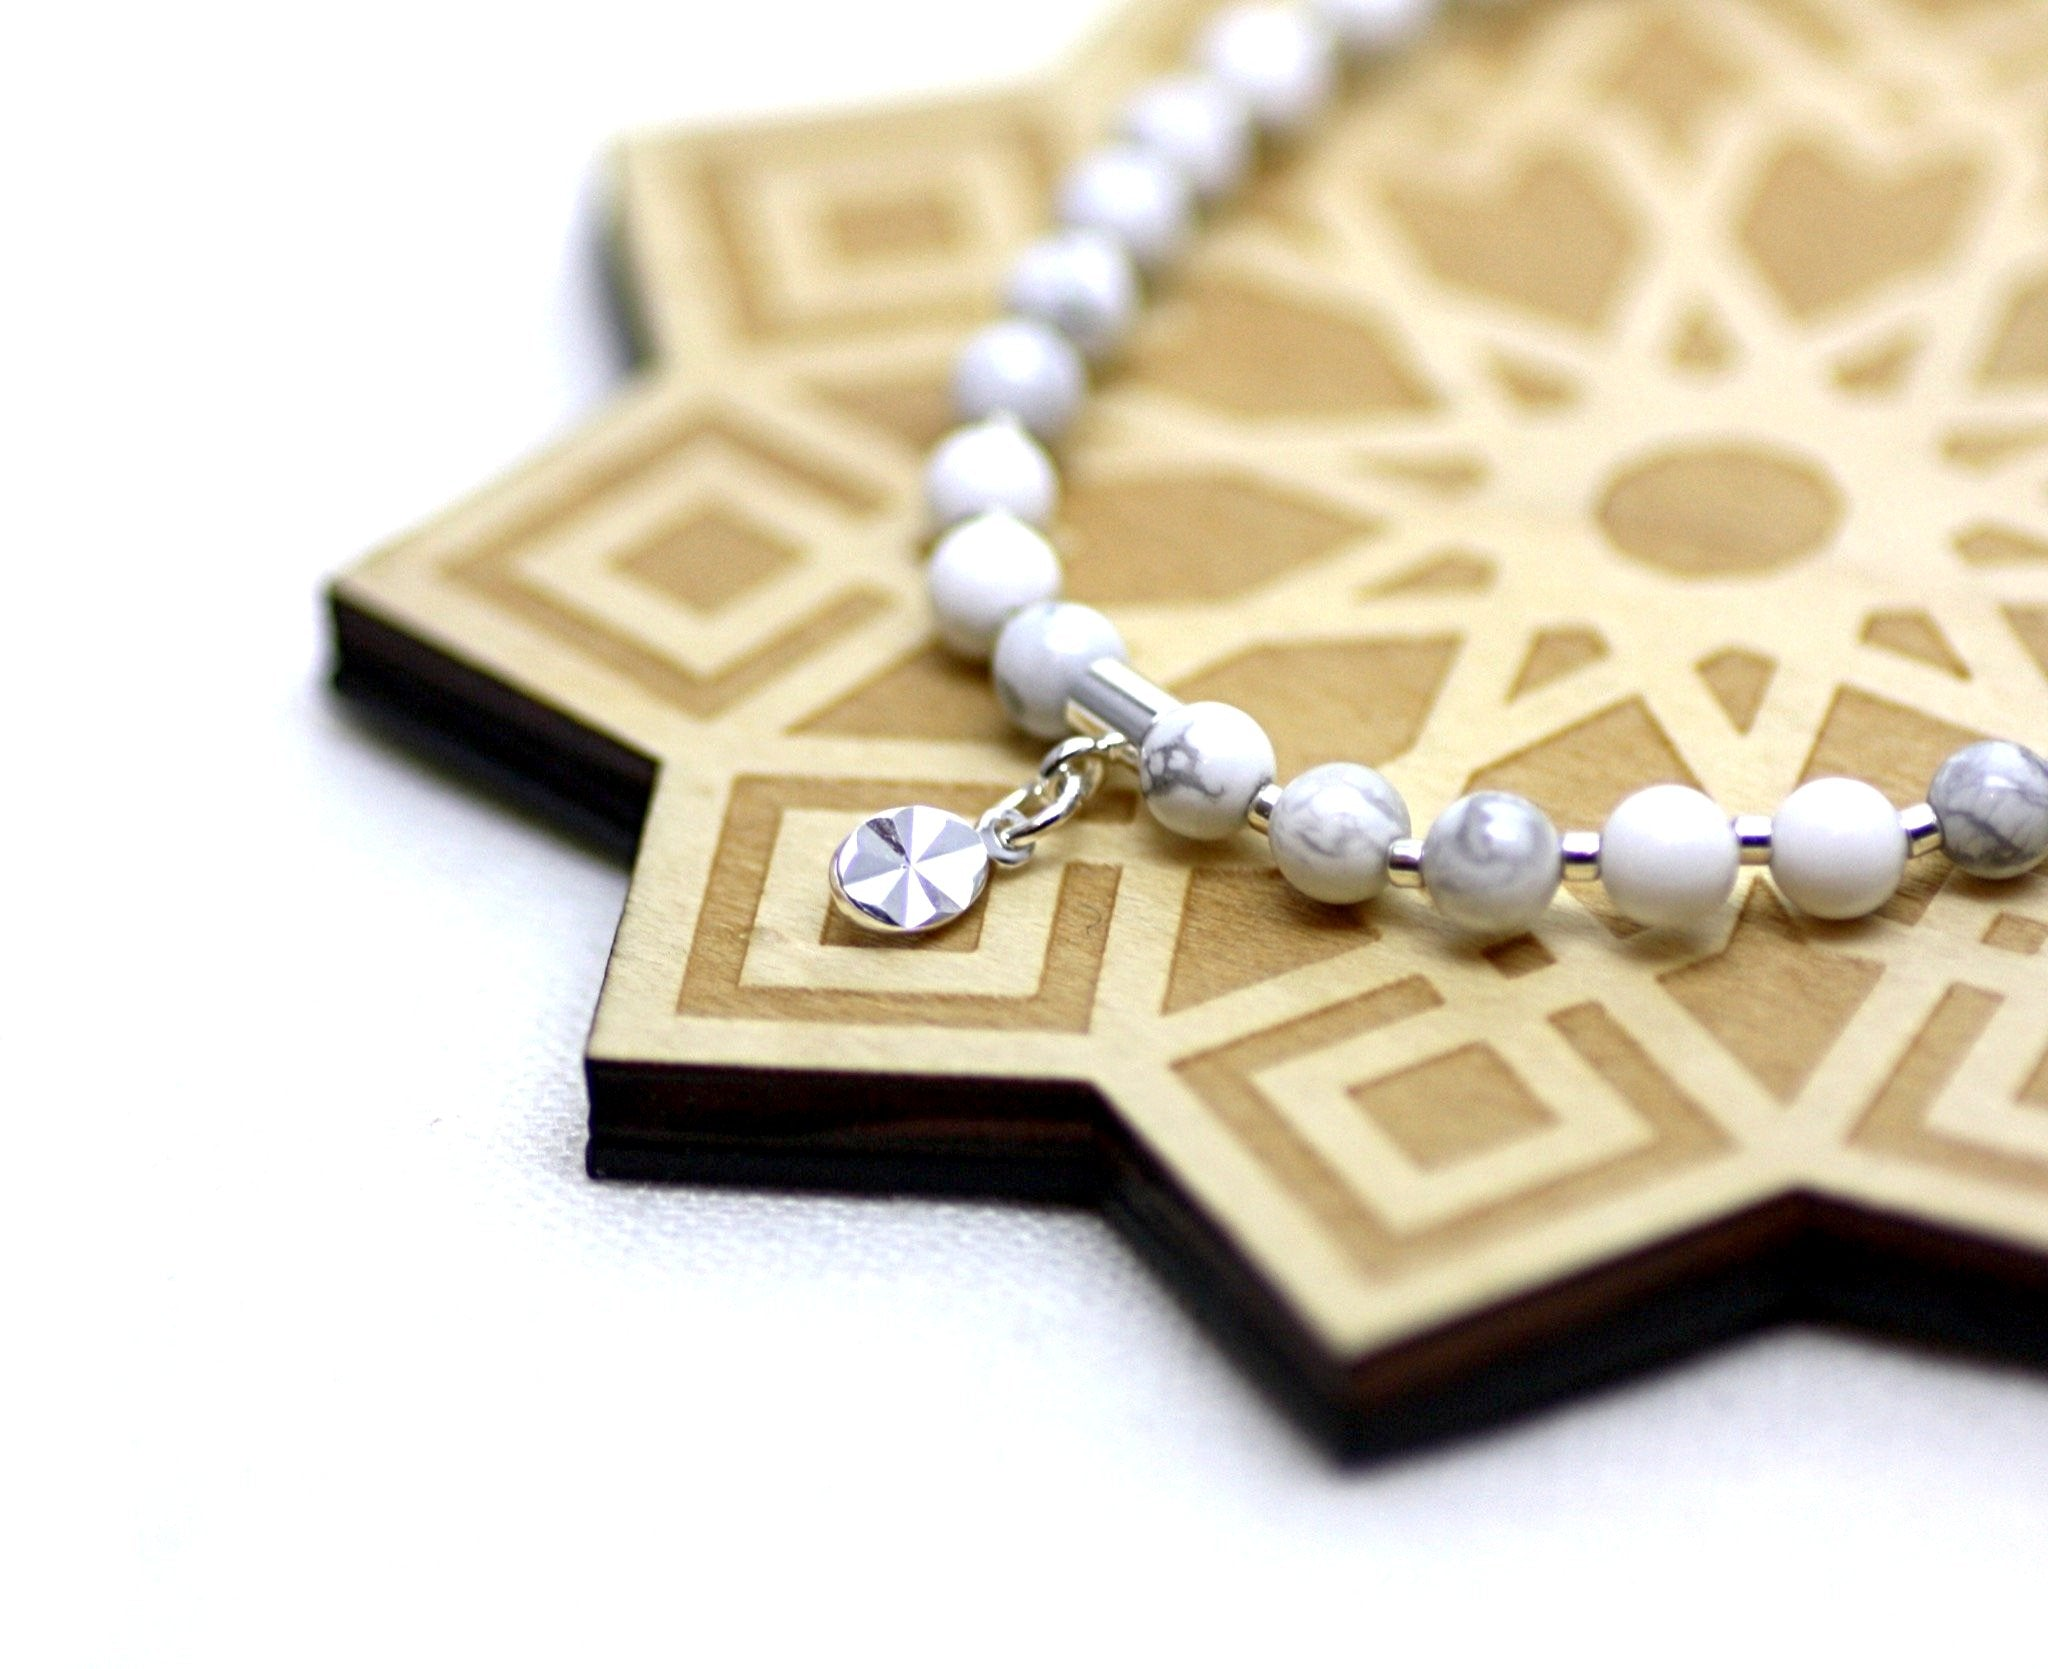 White Howlite and Silver Wrist Tasbih